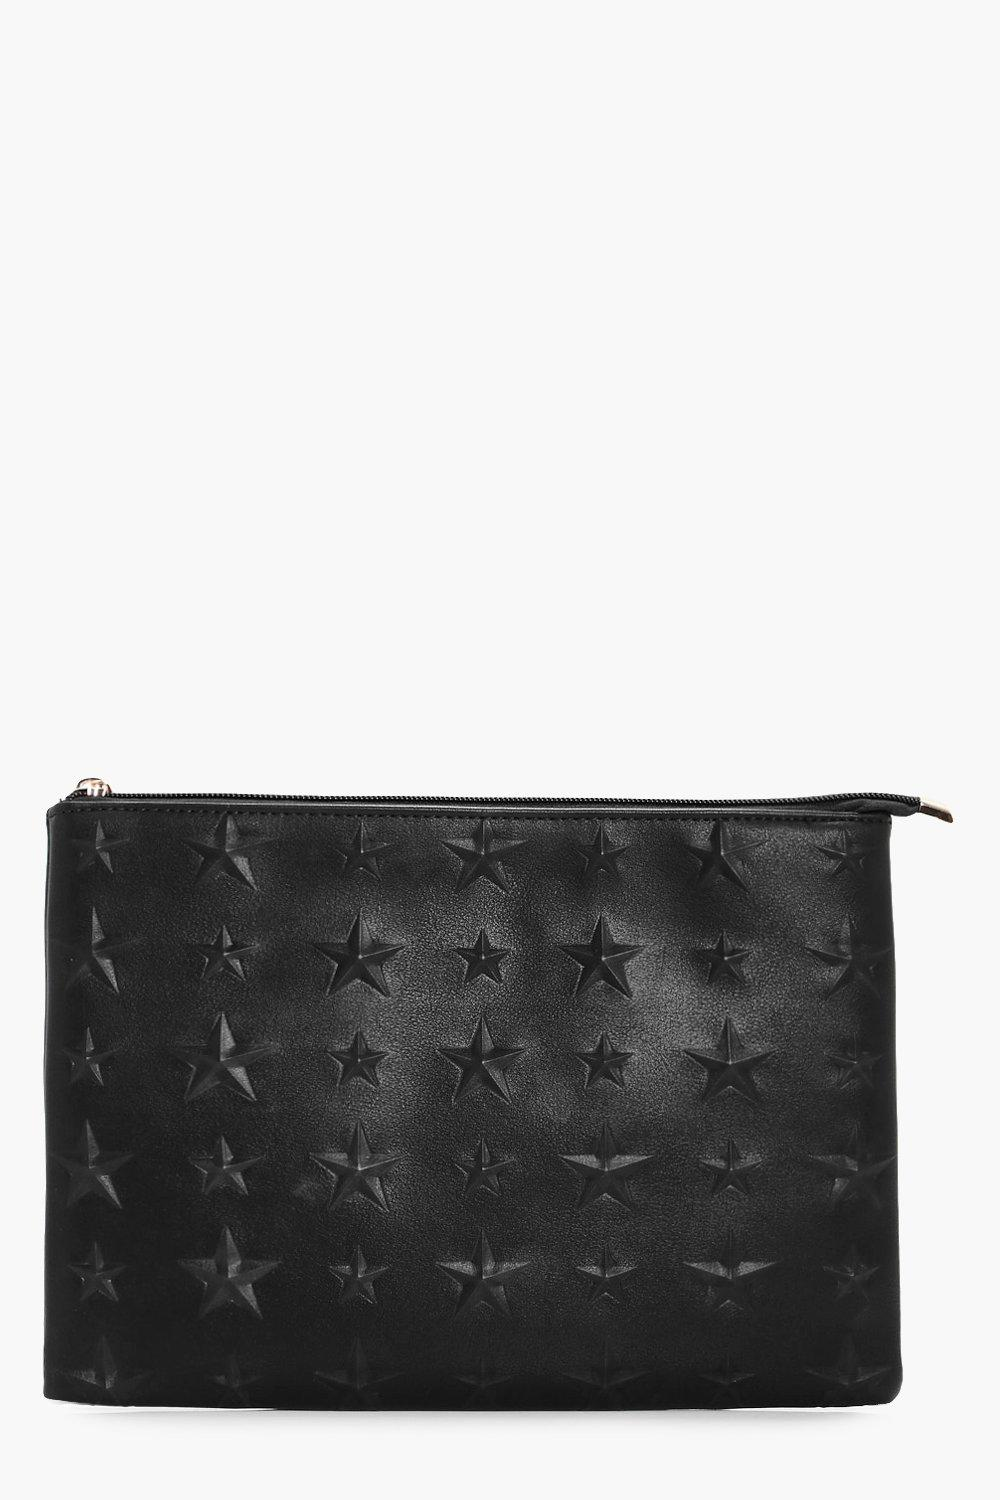 Embossed Star Zip Top Clutch - black - Skye Emboss